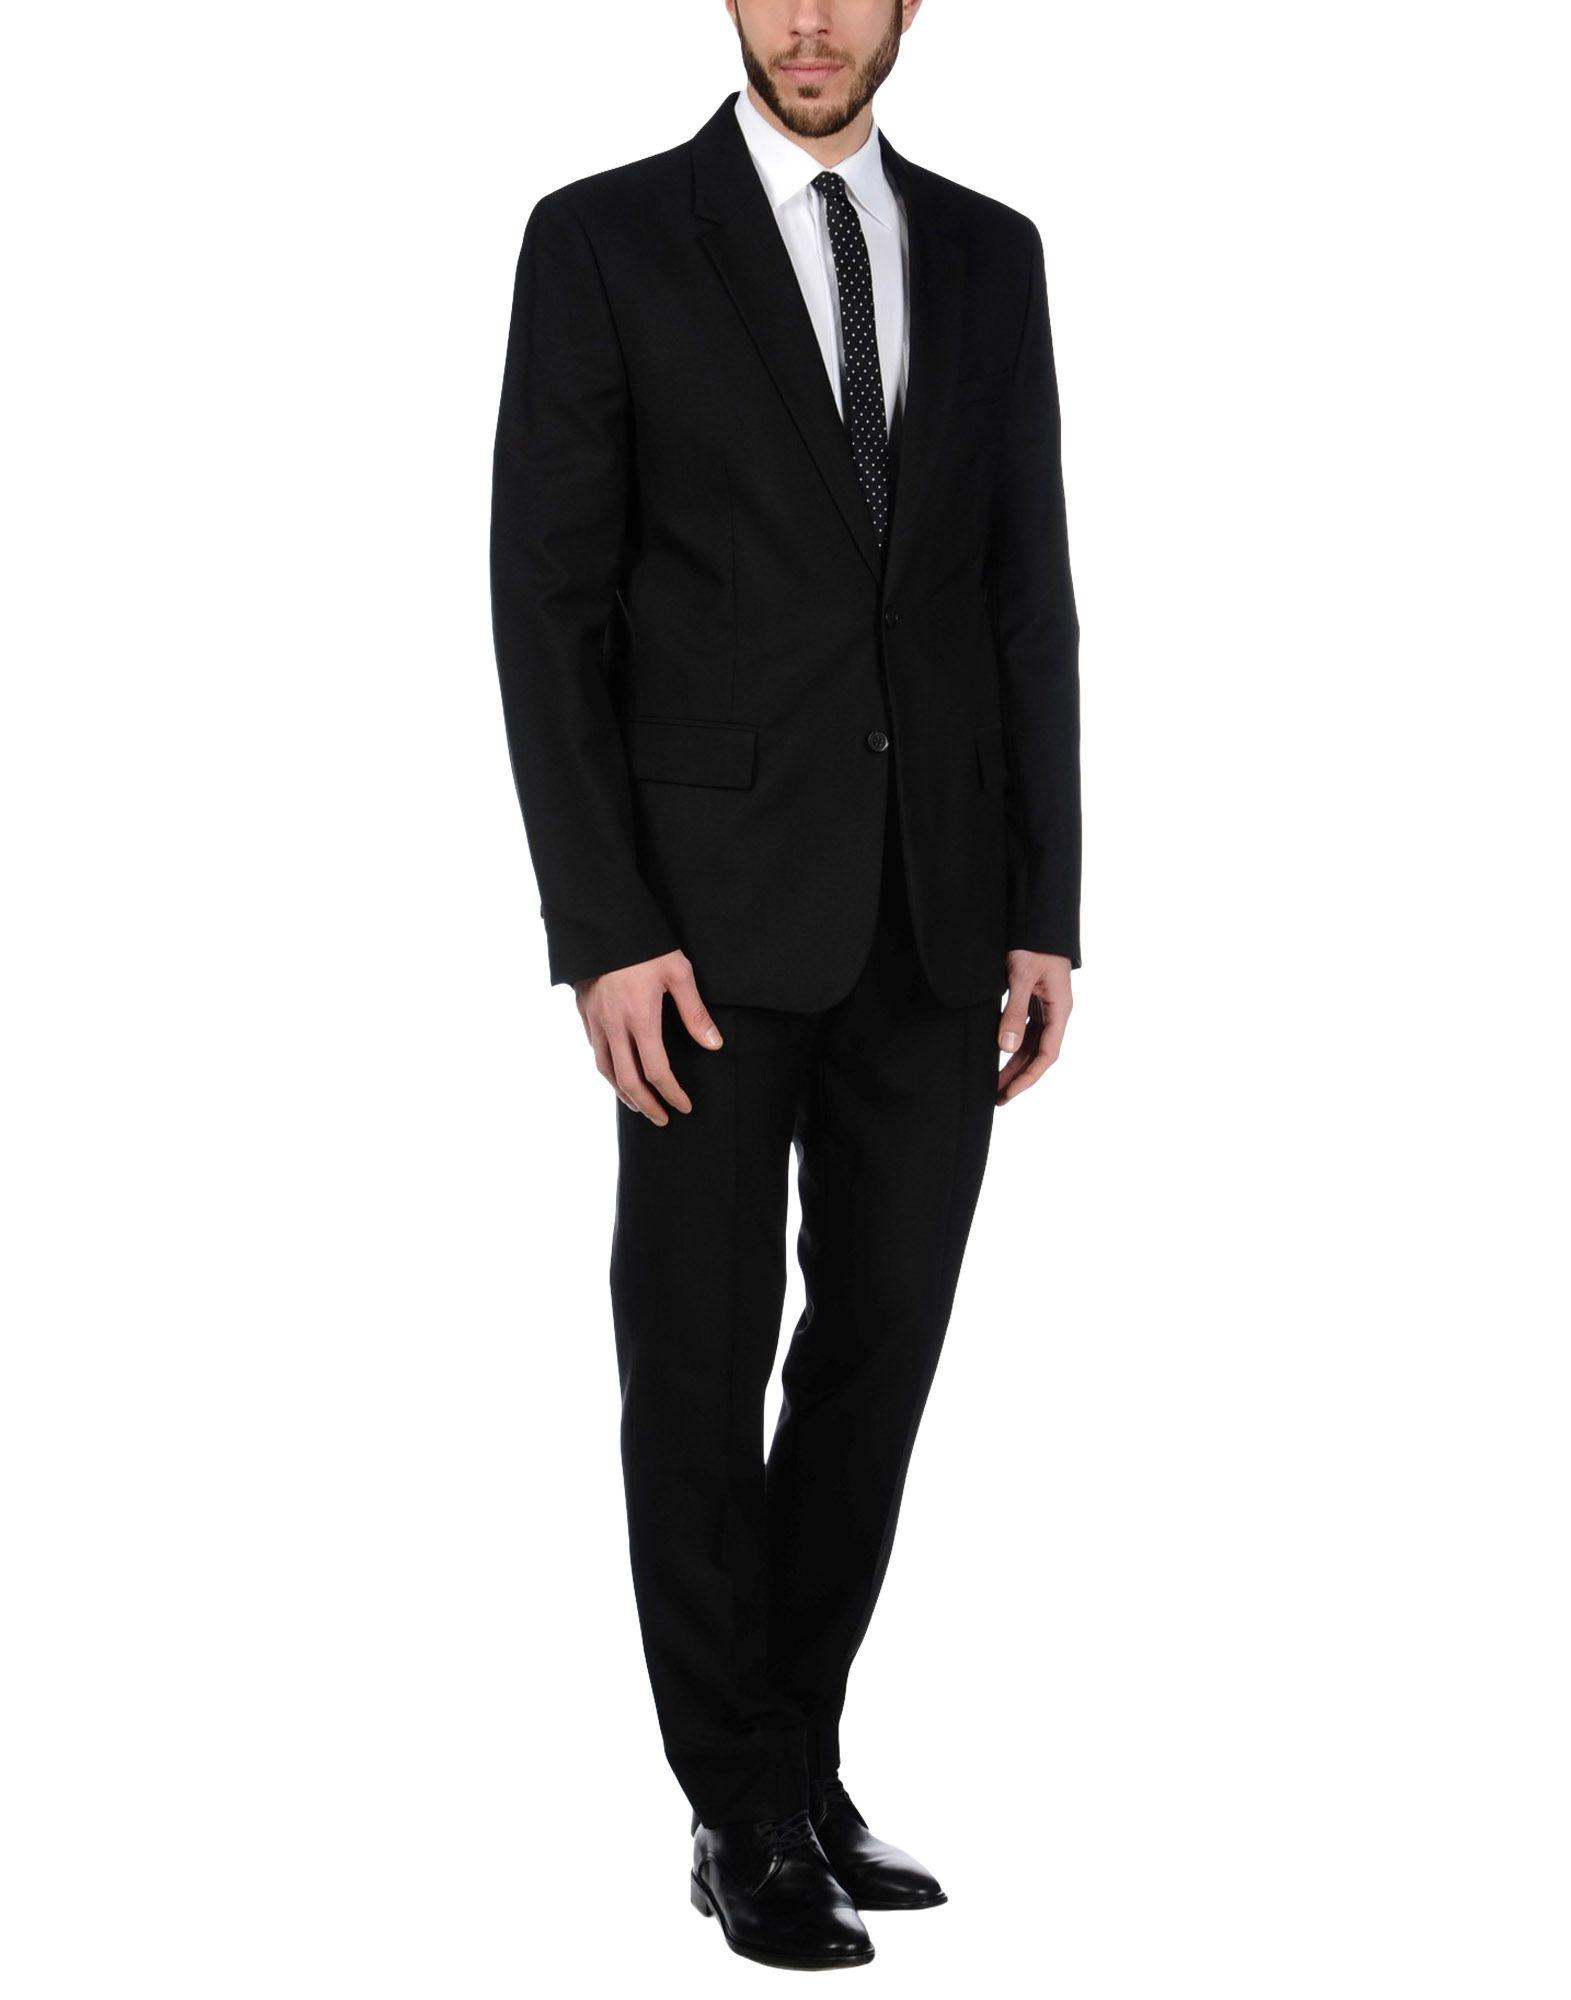 margie black single men Buy maison margiela men's black single-breasted cashmere coat, starting at $1,740 similar products also available sale now on.